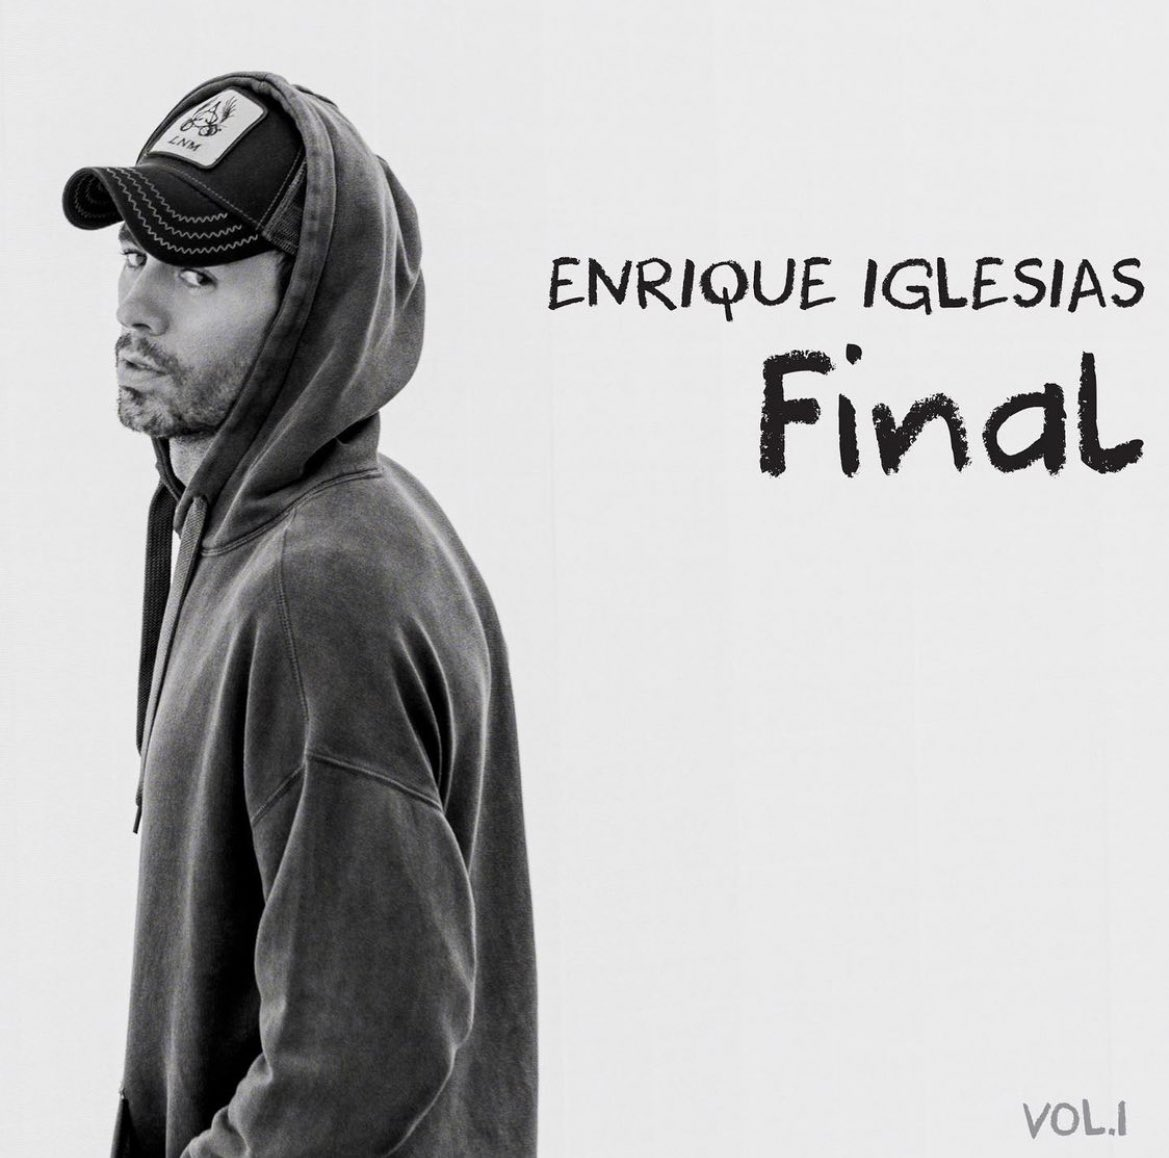 FINAL VOL. 1 IS OUT NOW! image